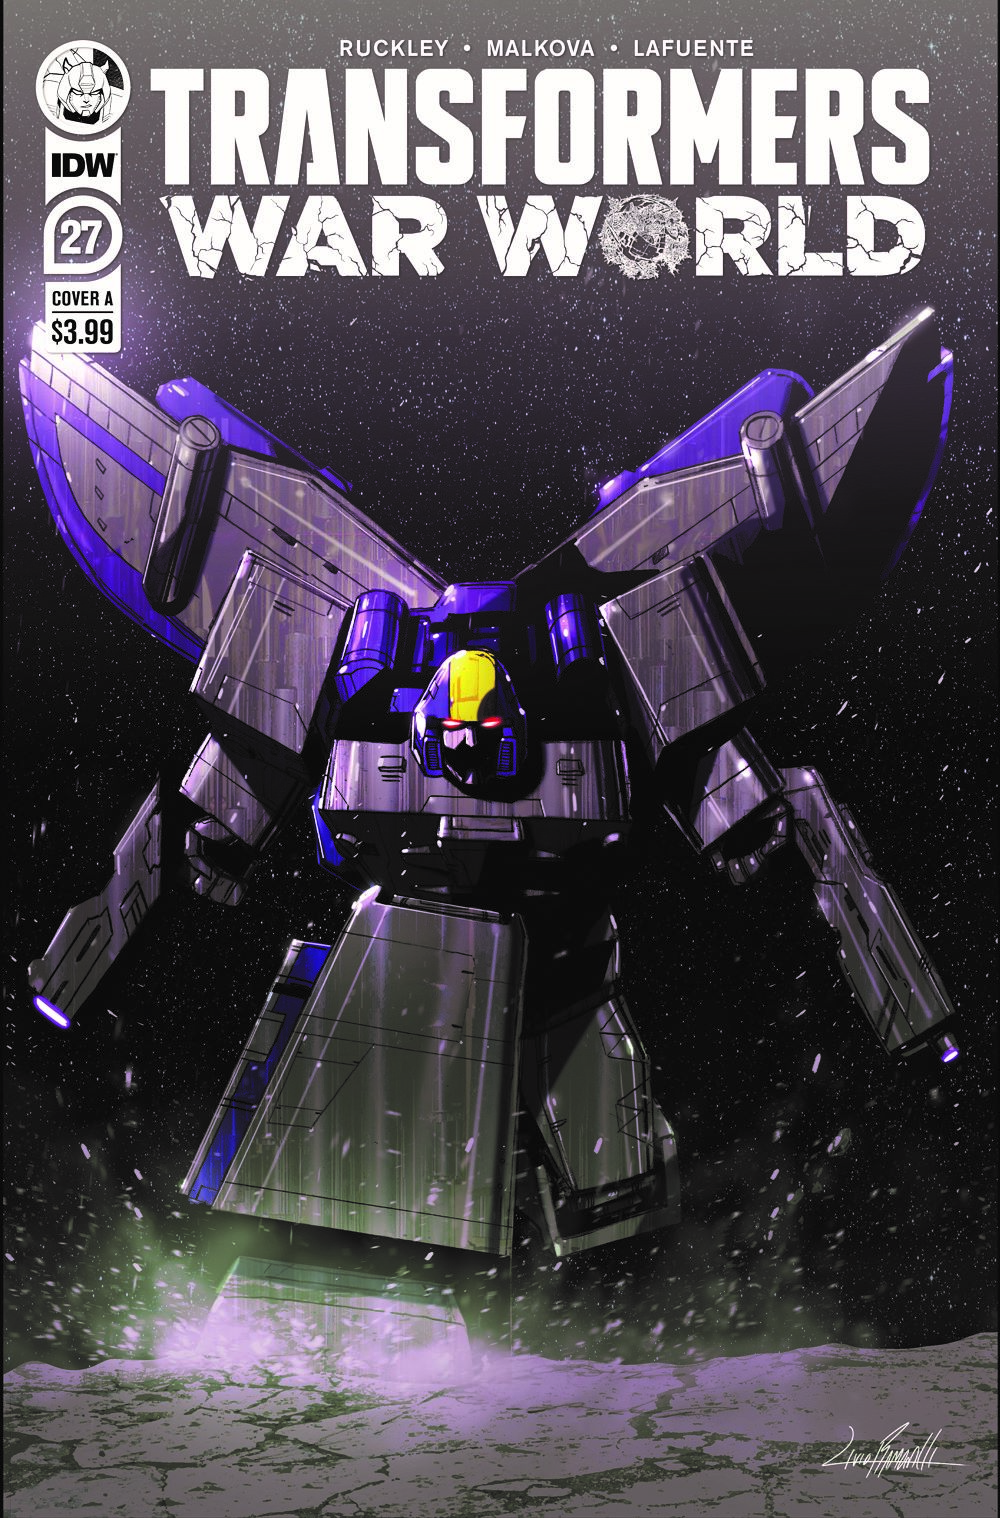 TF27-cvr-A ComicList: IDW Publishing New Releases for 01/20/2021